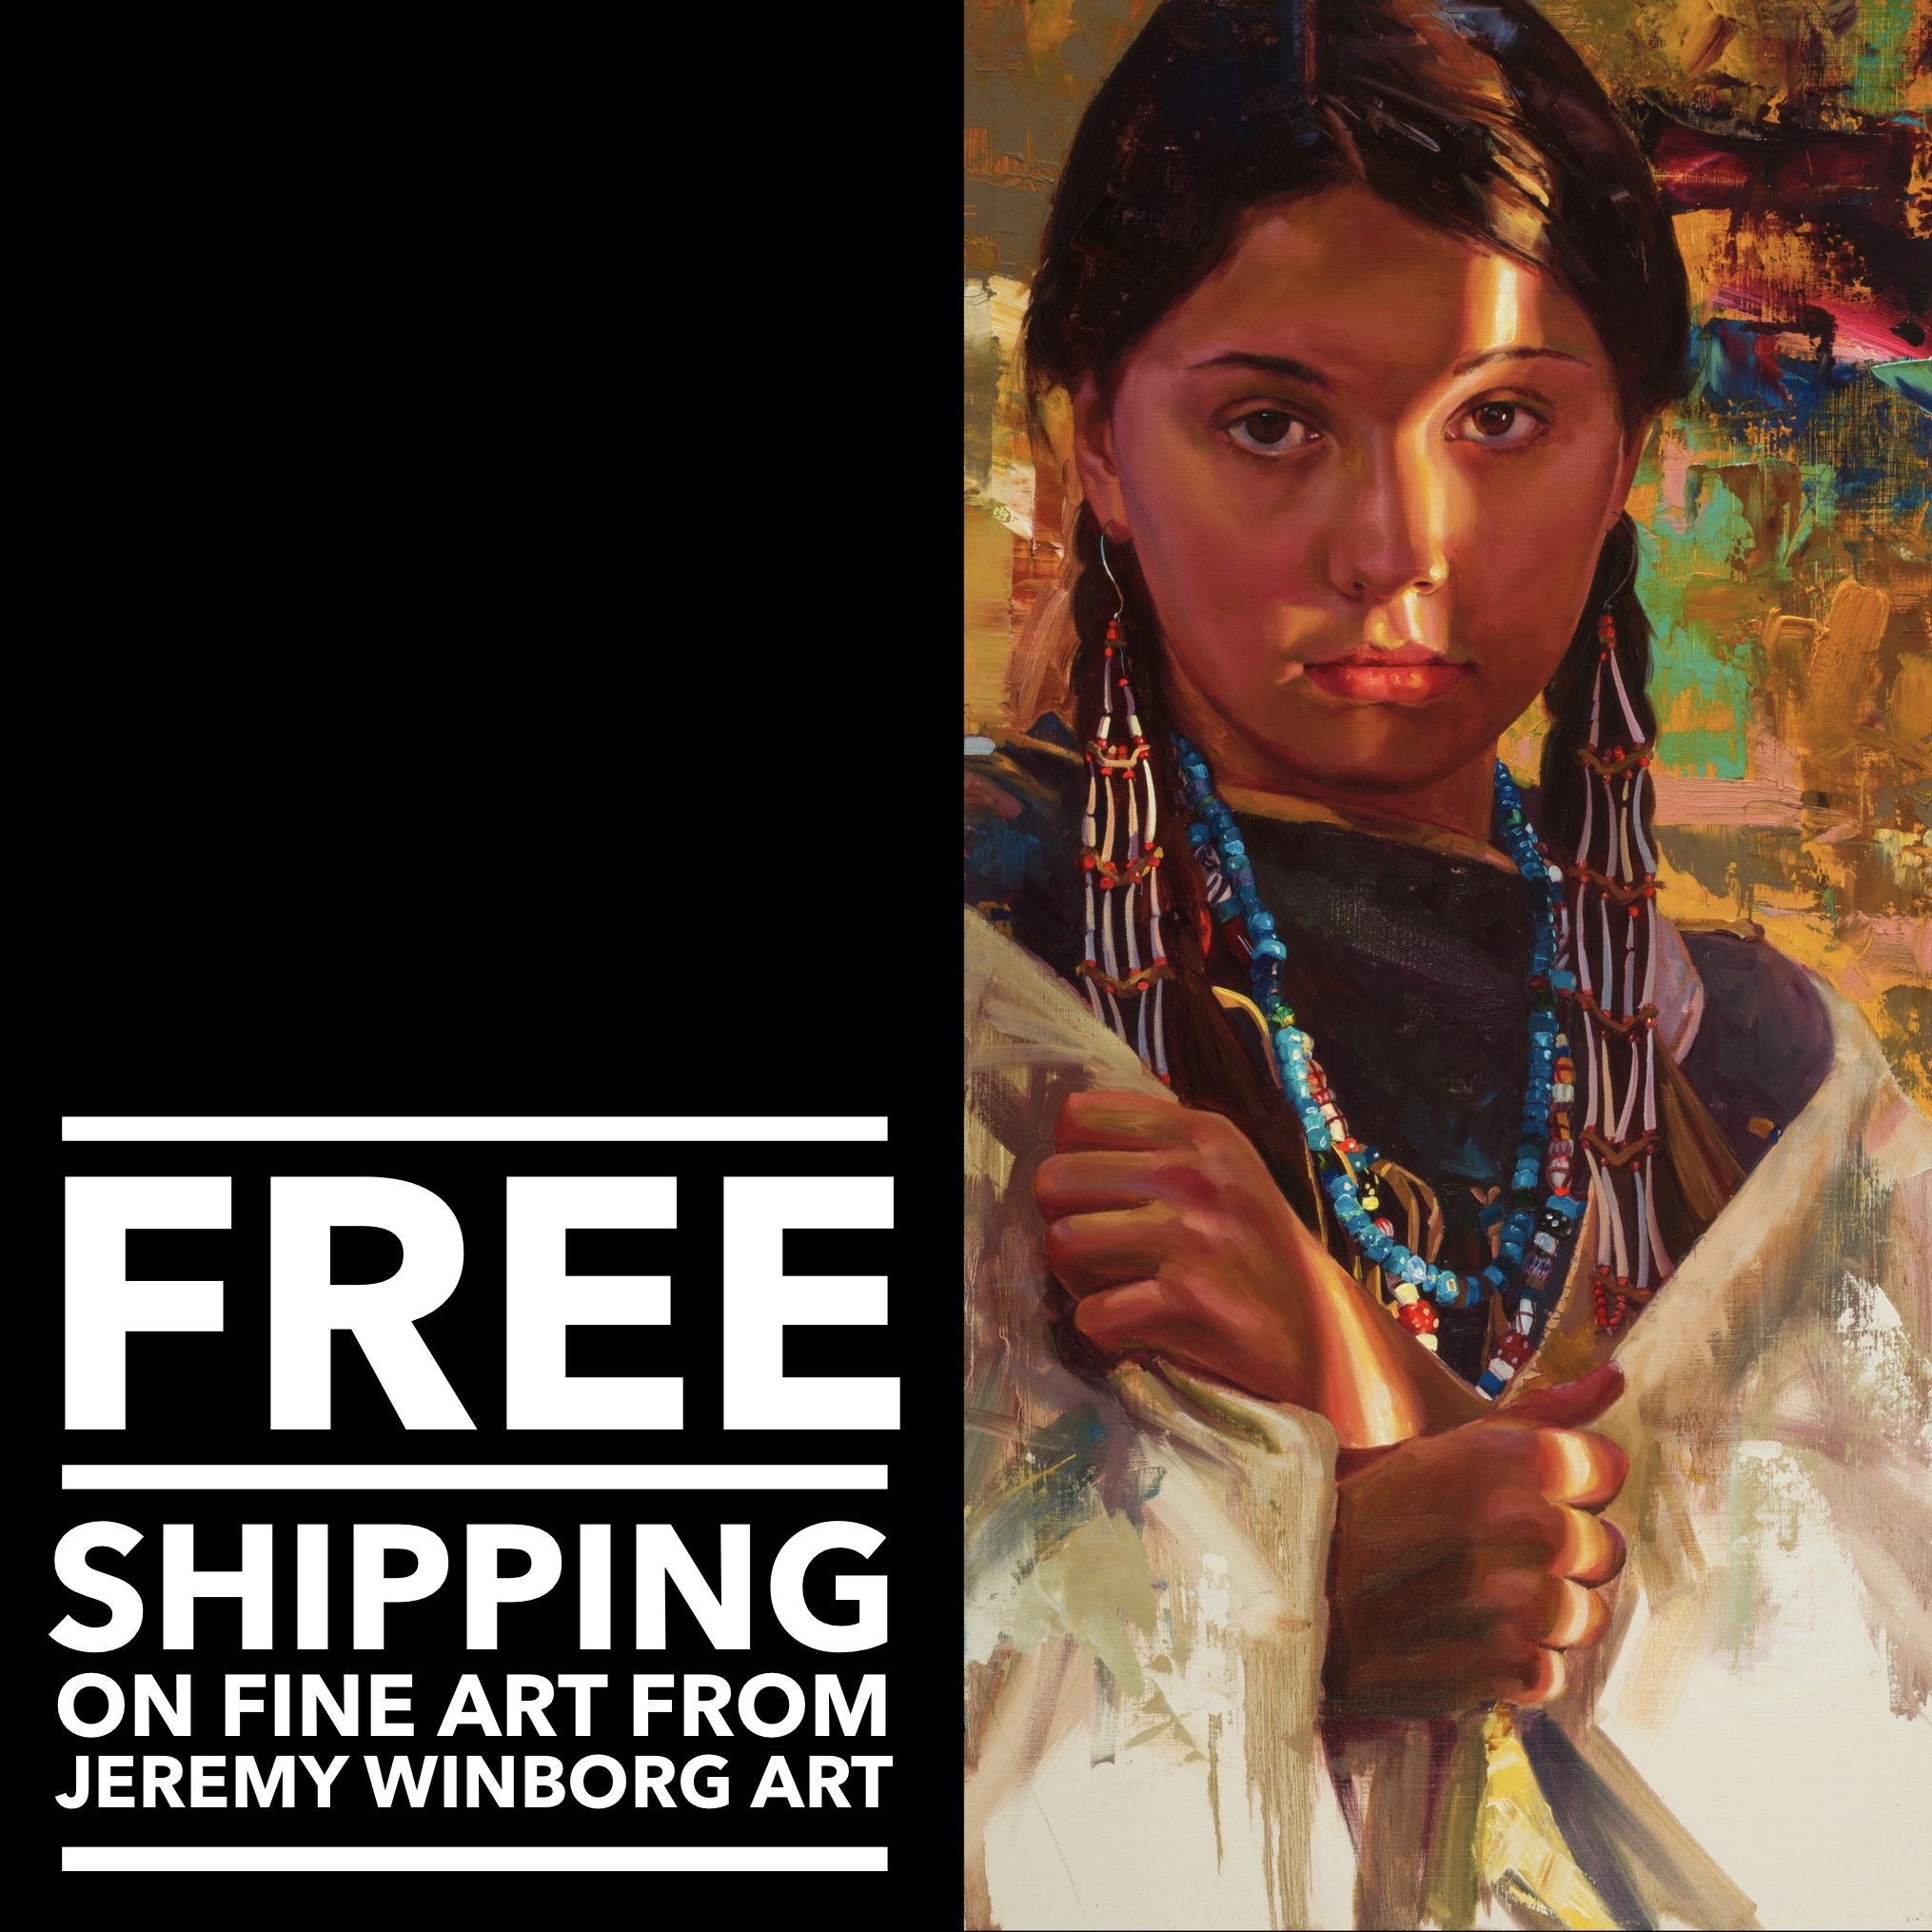 Free Shipping at Jeremy Winborg Art